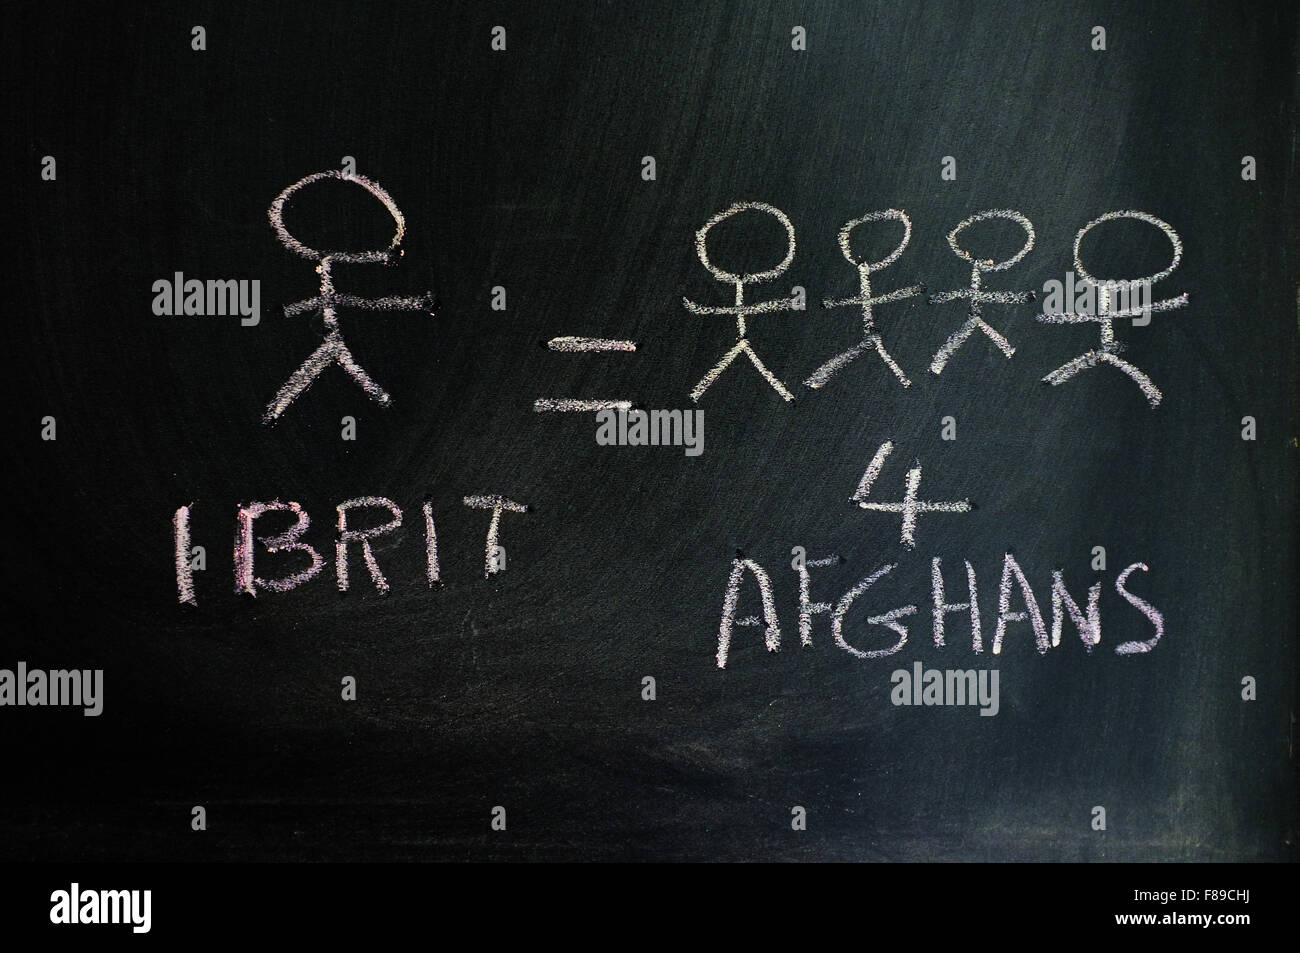 Stick figures representing inequality written on a blackboard in chalk. - Stock Image